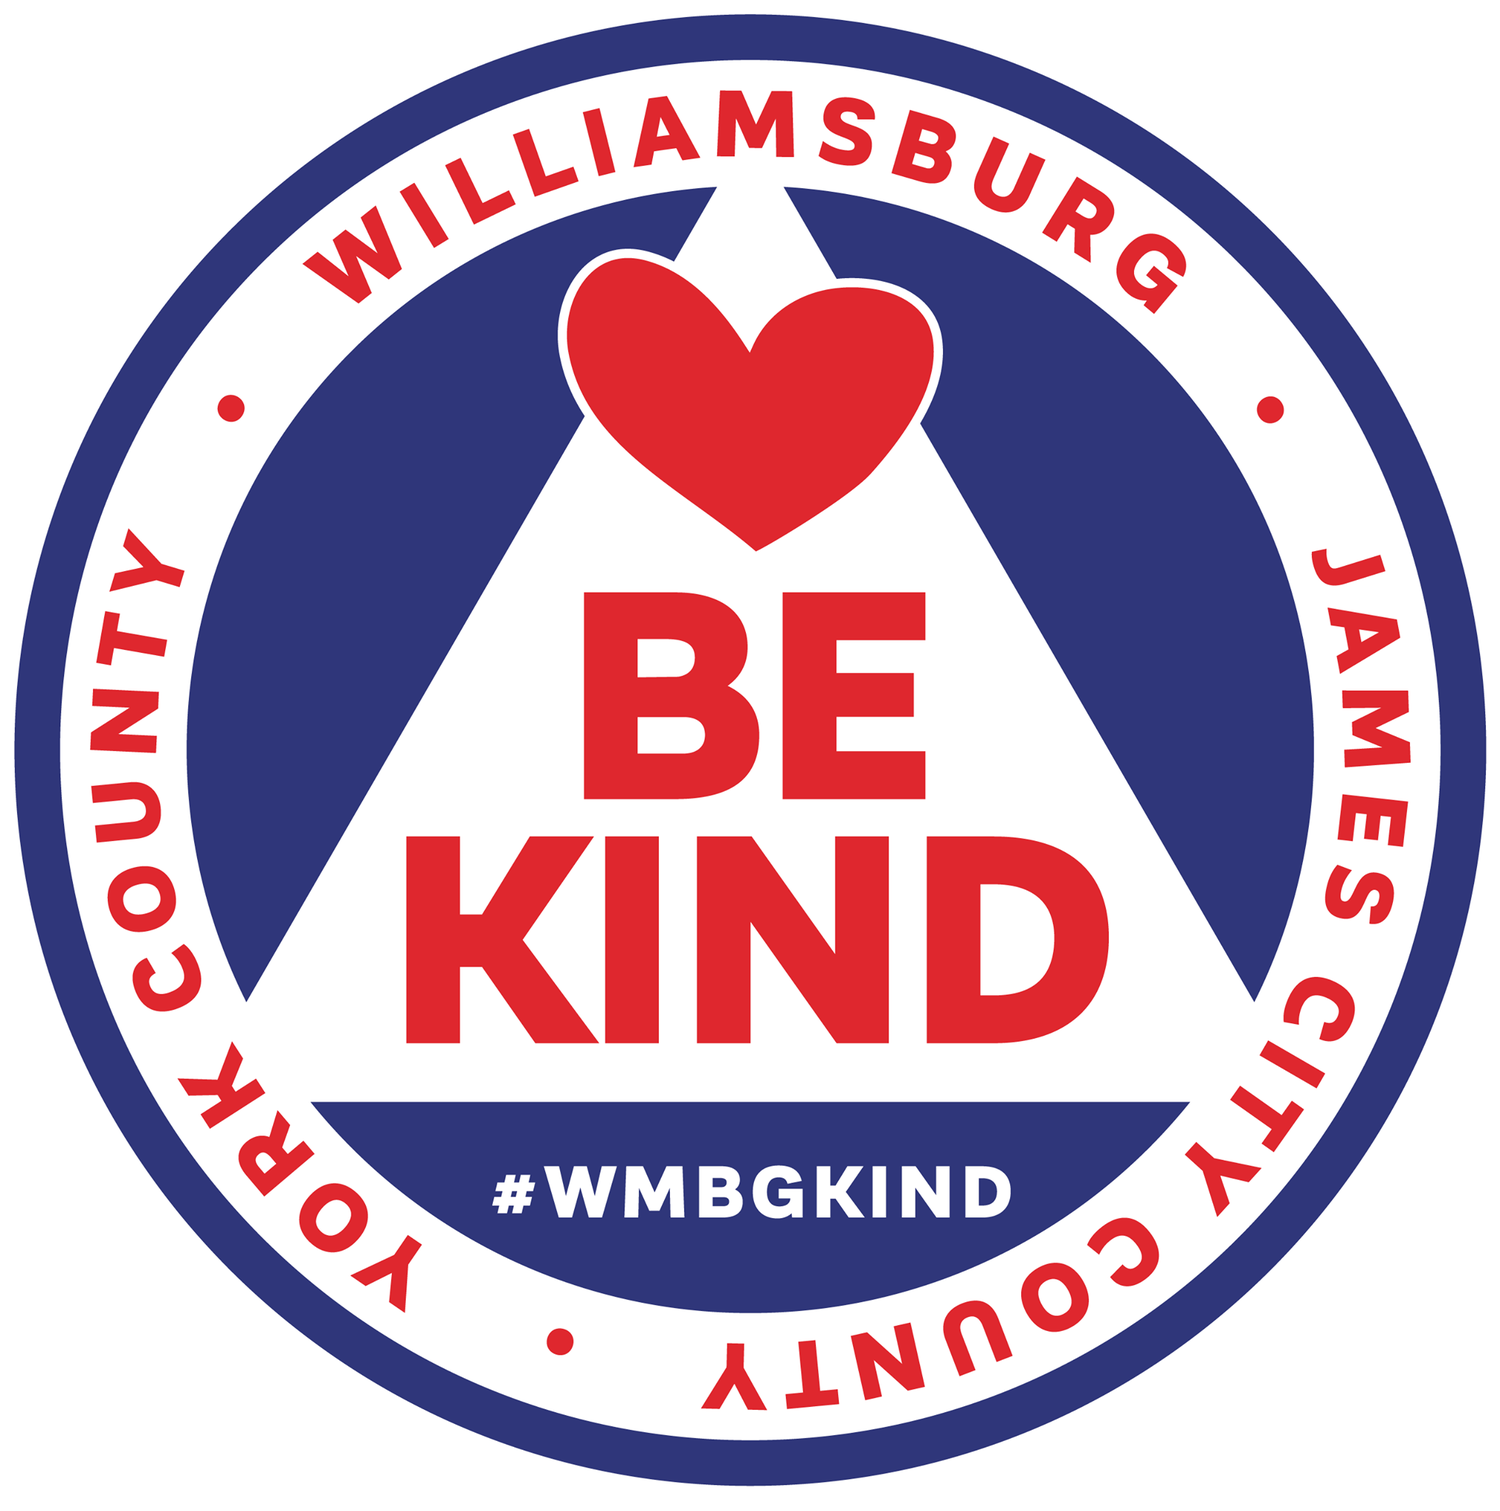 City of Kindness | WMBGkind I Be Kind | Williamsburg, Virginia